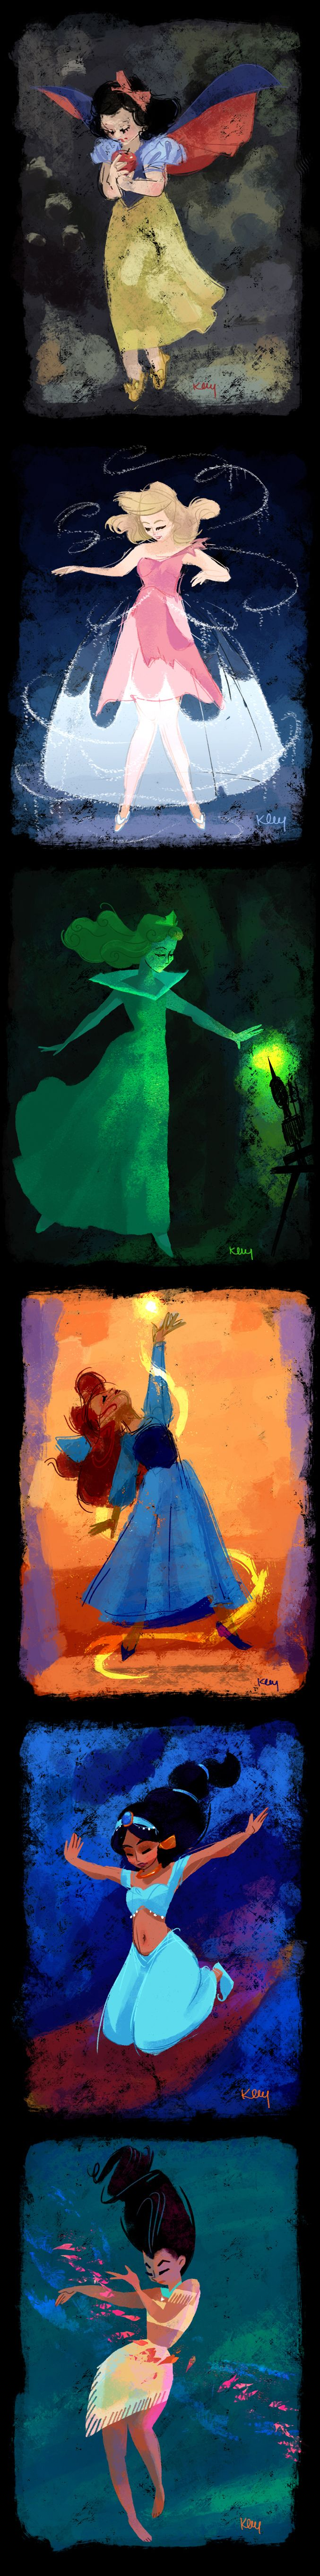 Disney Princess paintings created by resident Disney artist Katia Oloy.